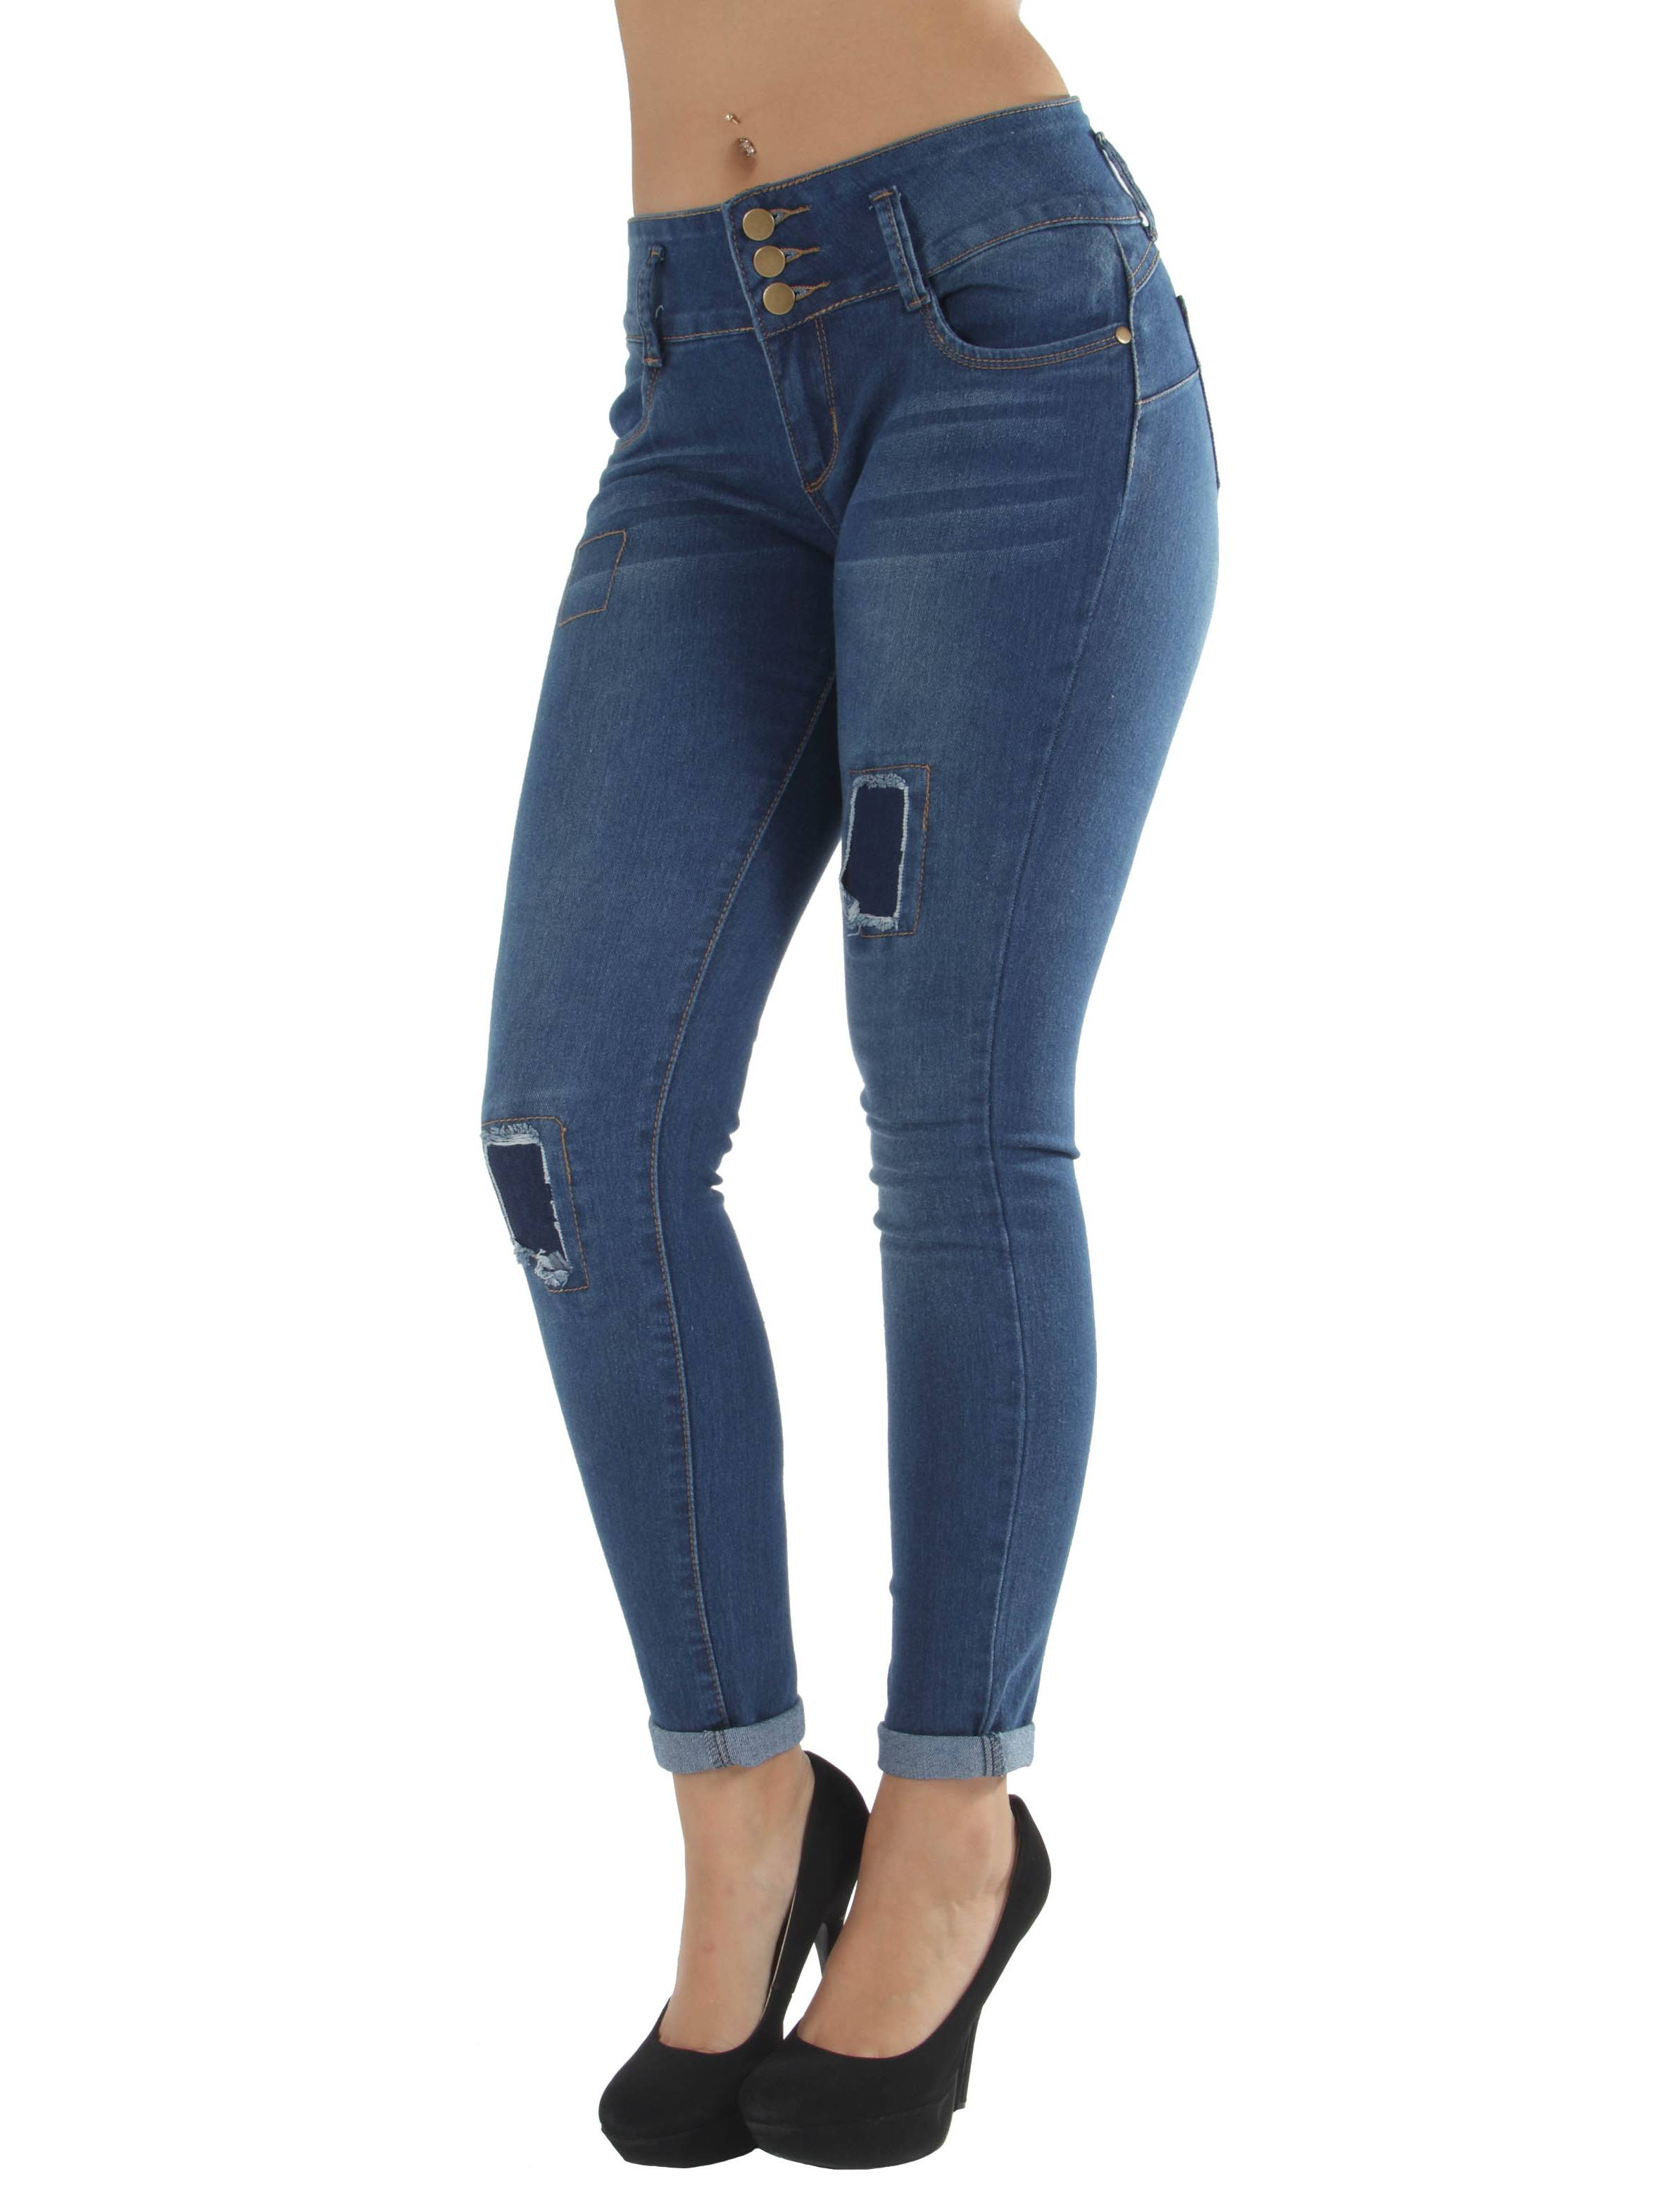 CB9-92673(S) - Butt Lifting, Levanta Cola, Rip and Repaired, Skinny Jeans